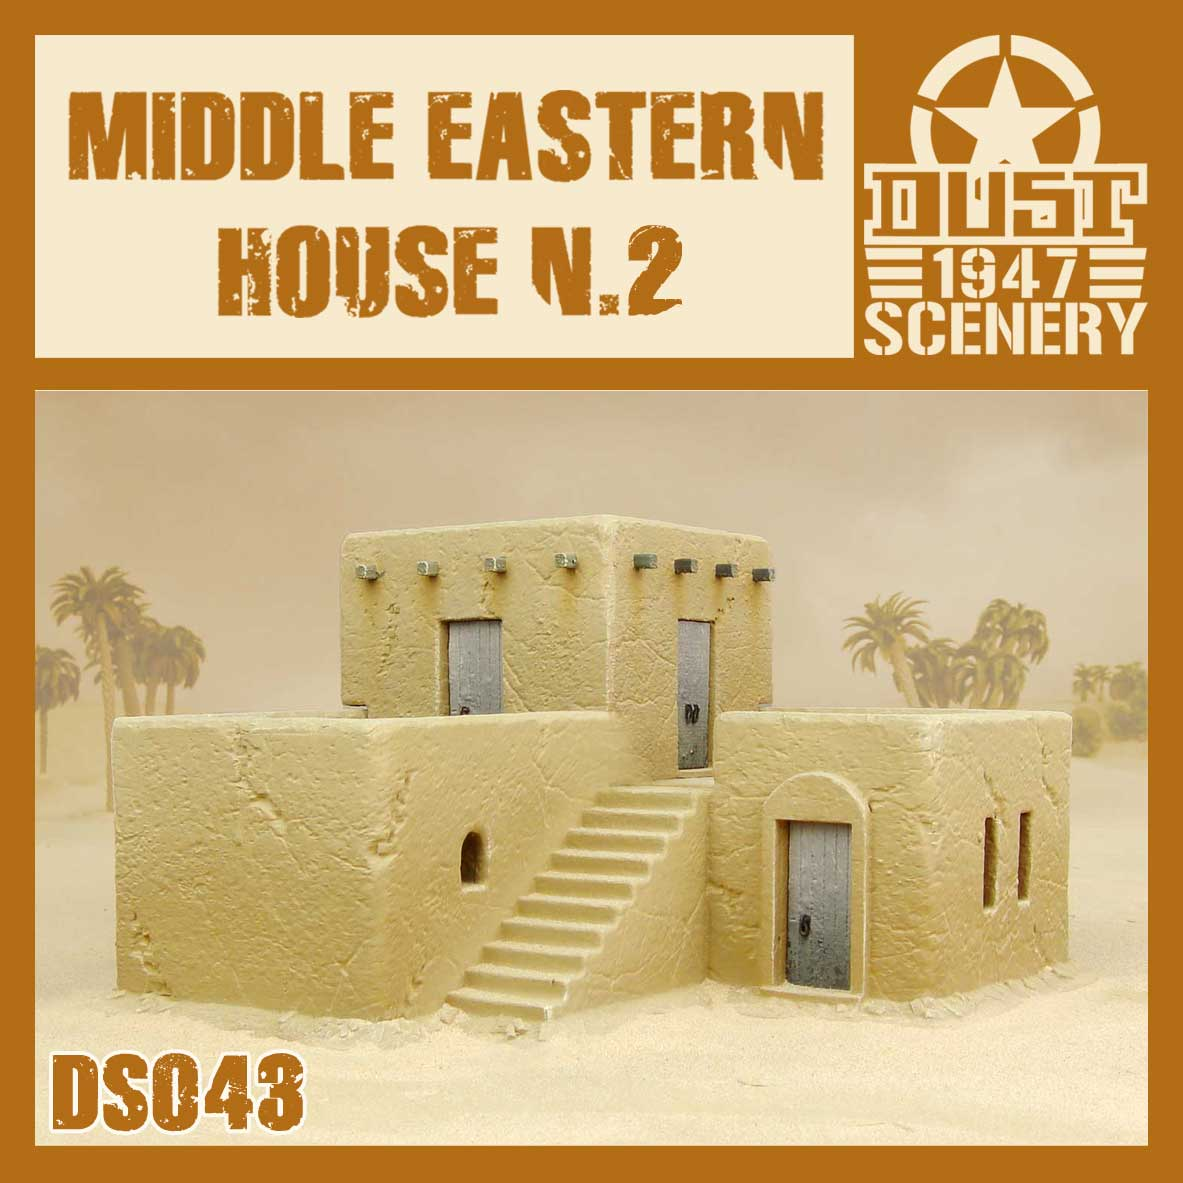 Middle Eastern House N.2